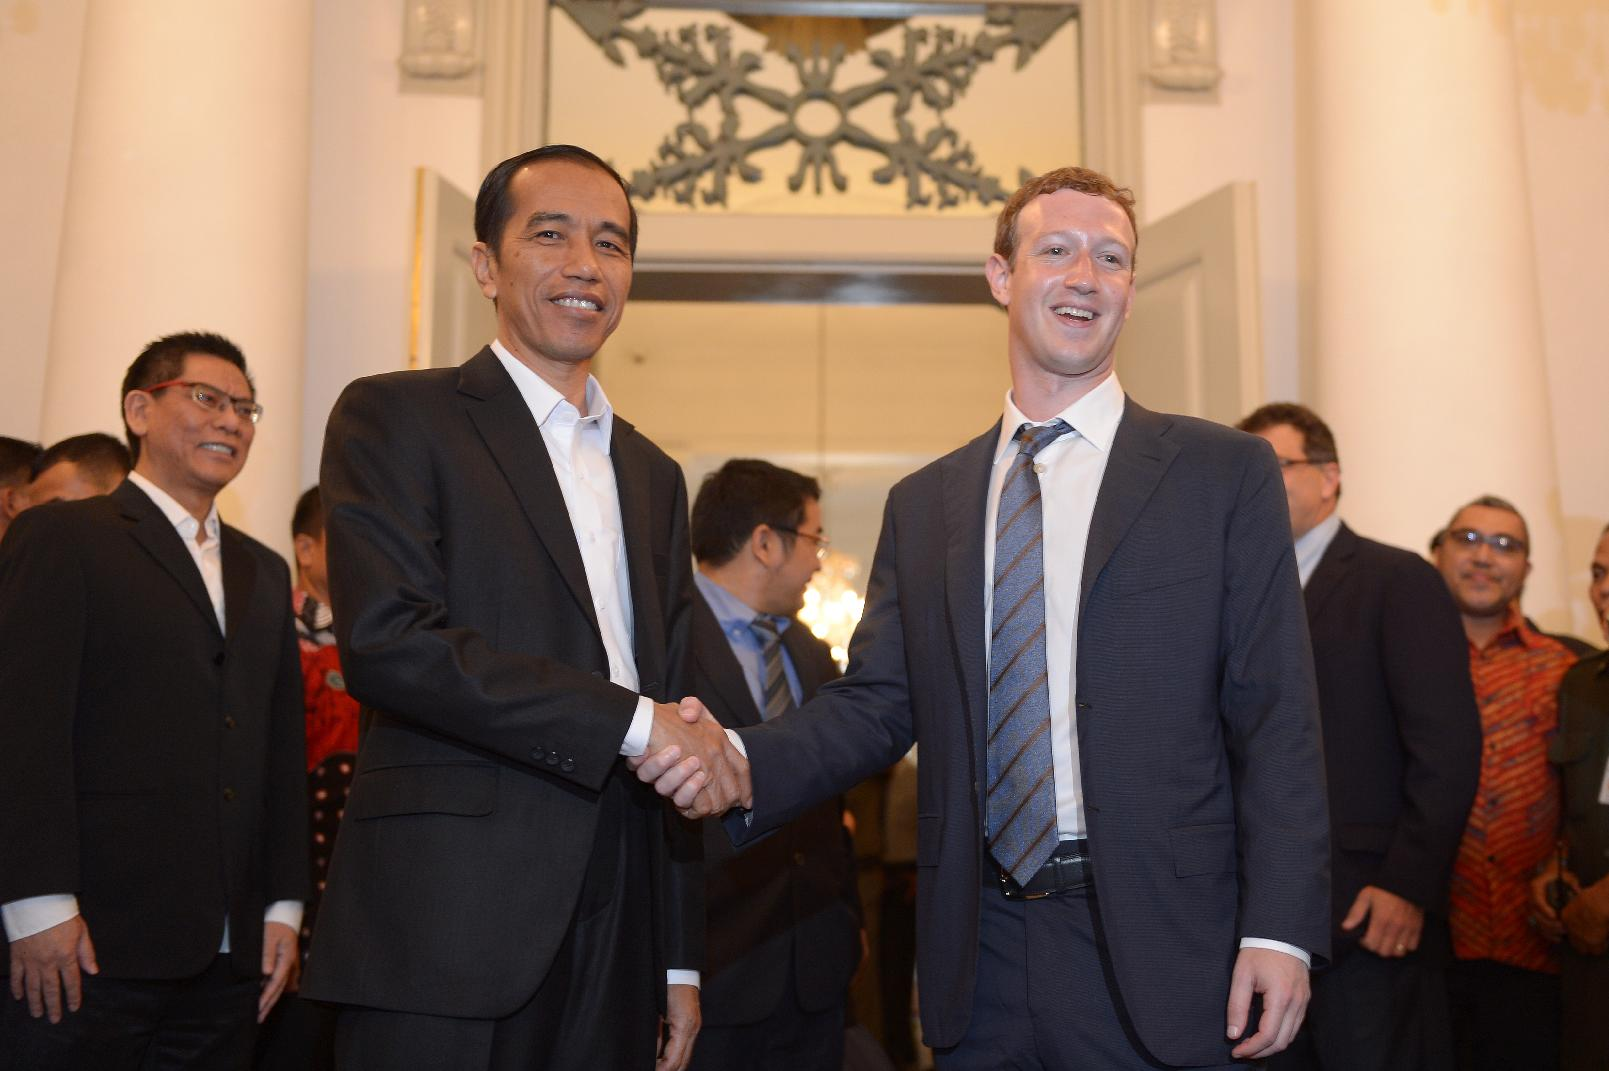 Facebook founder presses Indonesian leader on web access